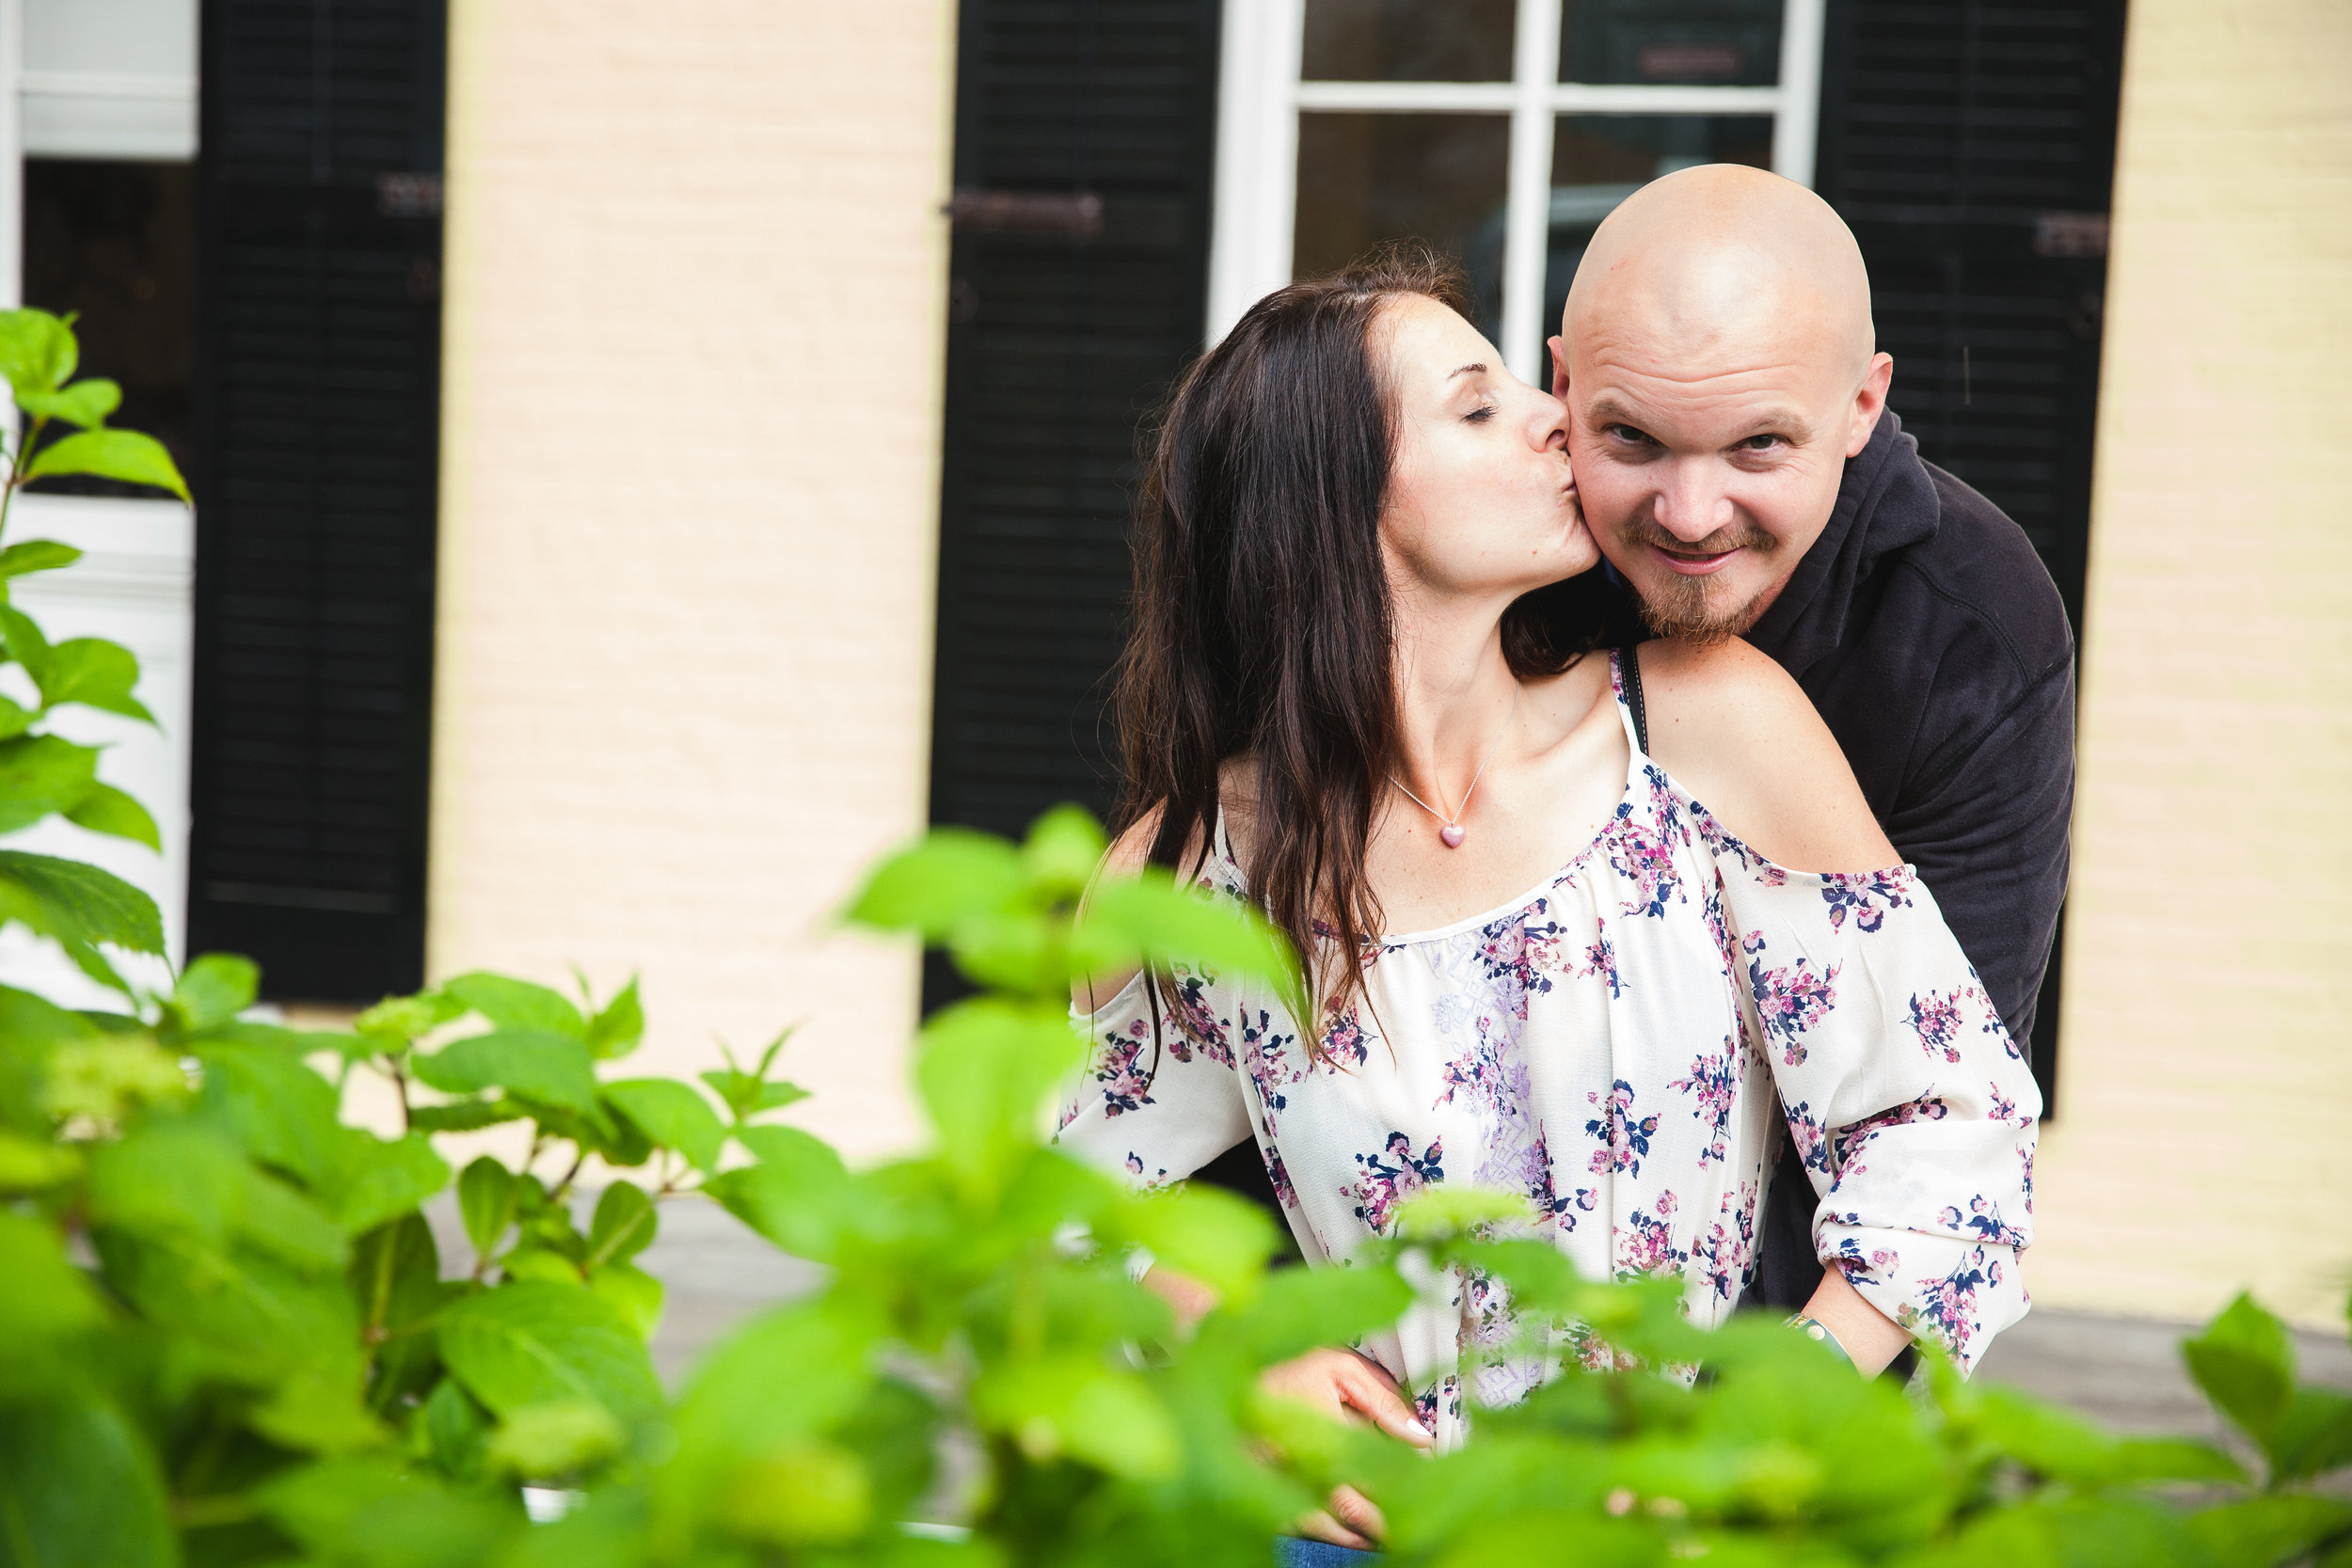 StaceyandJohnEngagementPrints-92.jpg